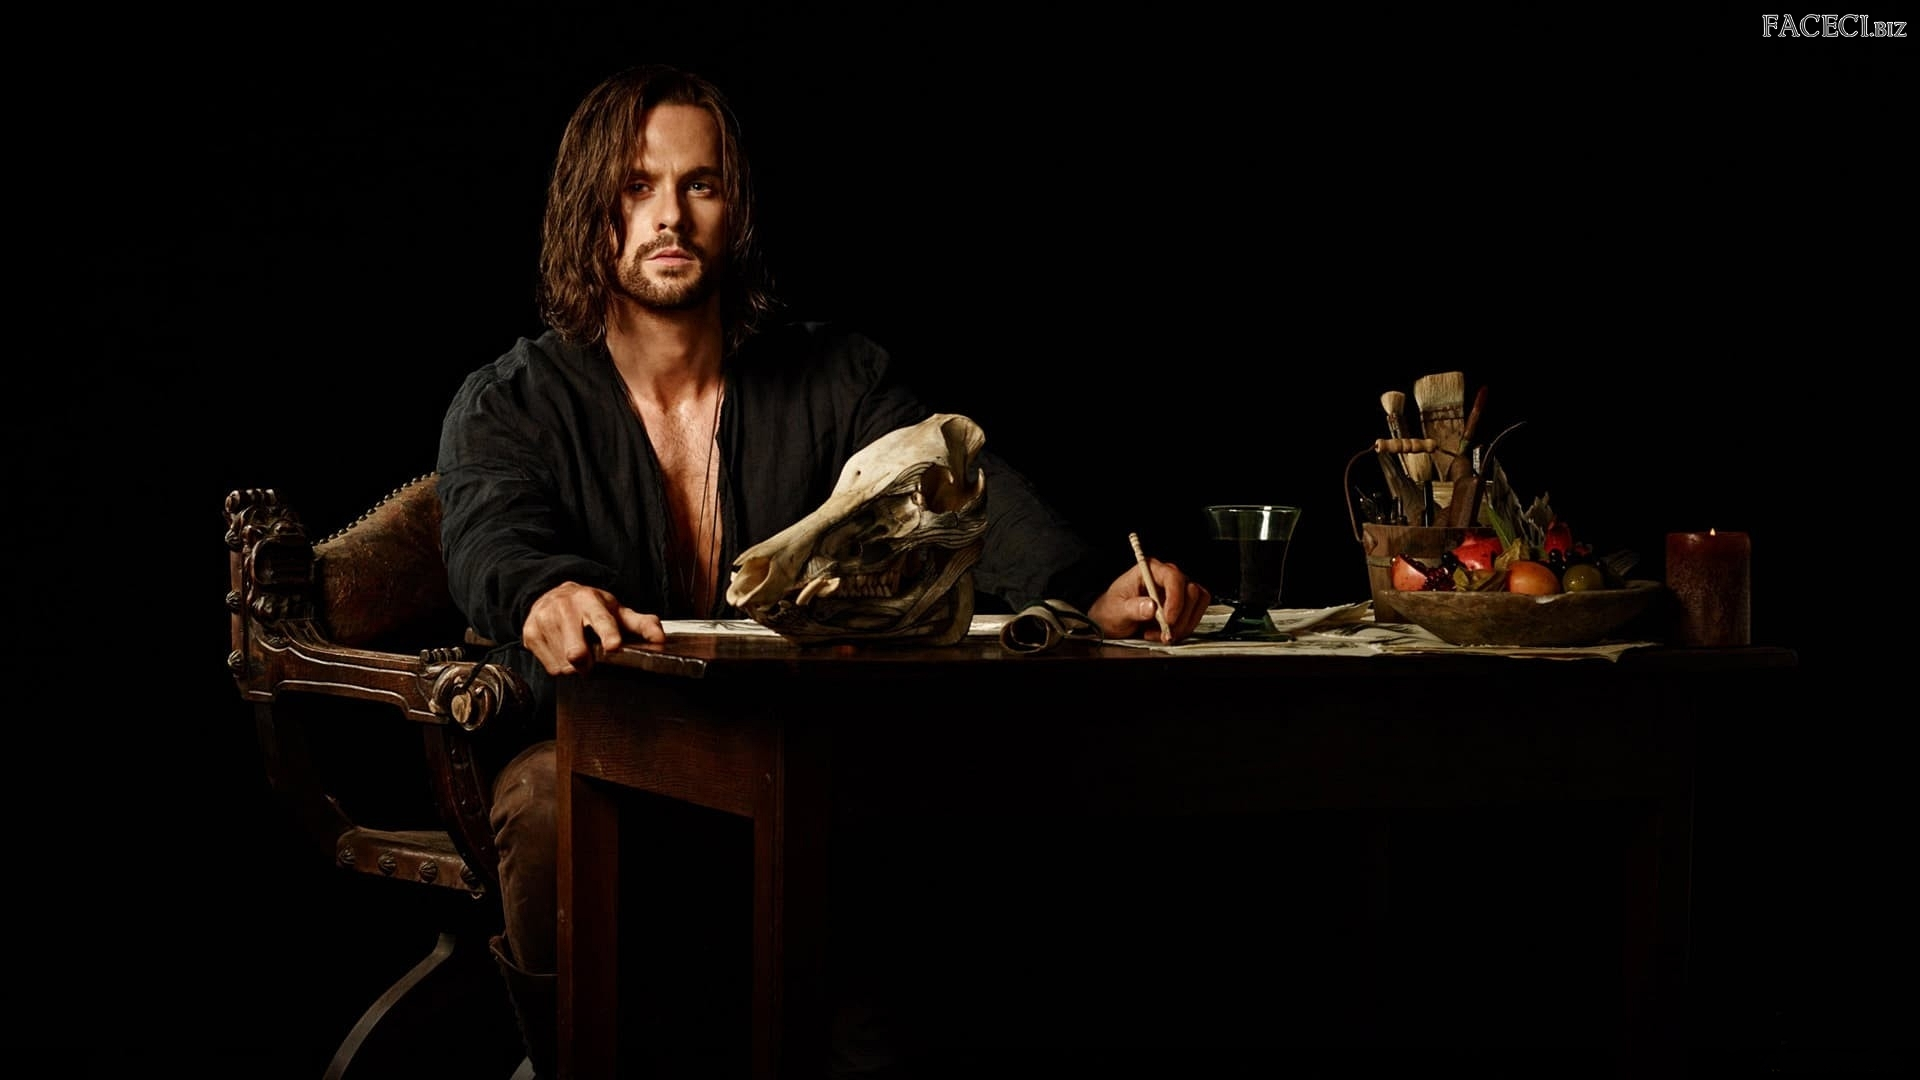 Tom Riley, Aktor, Demony Da Vinci, Serial, Leonardo da Vinci